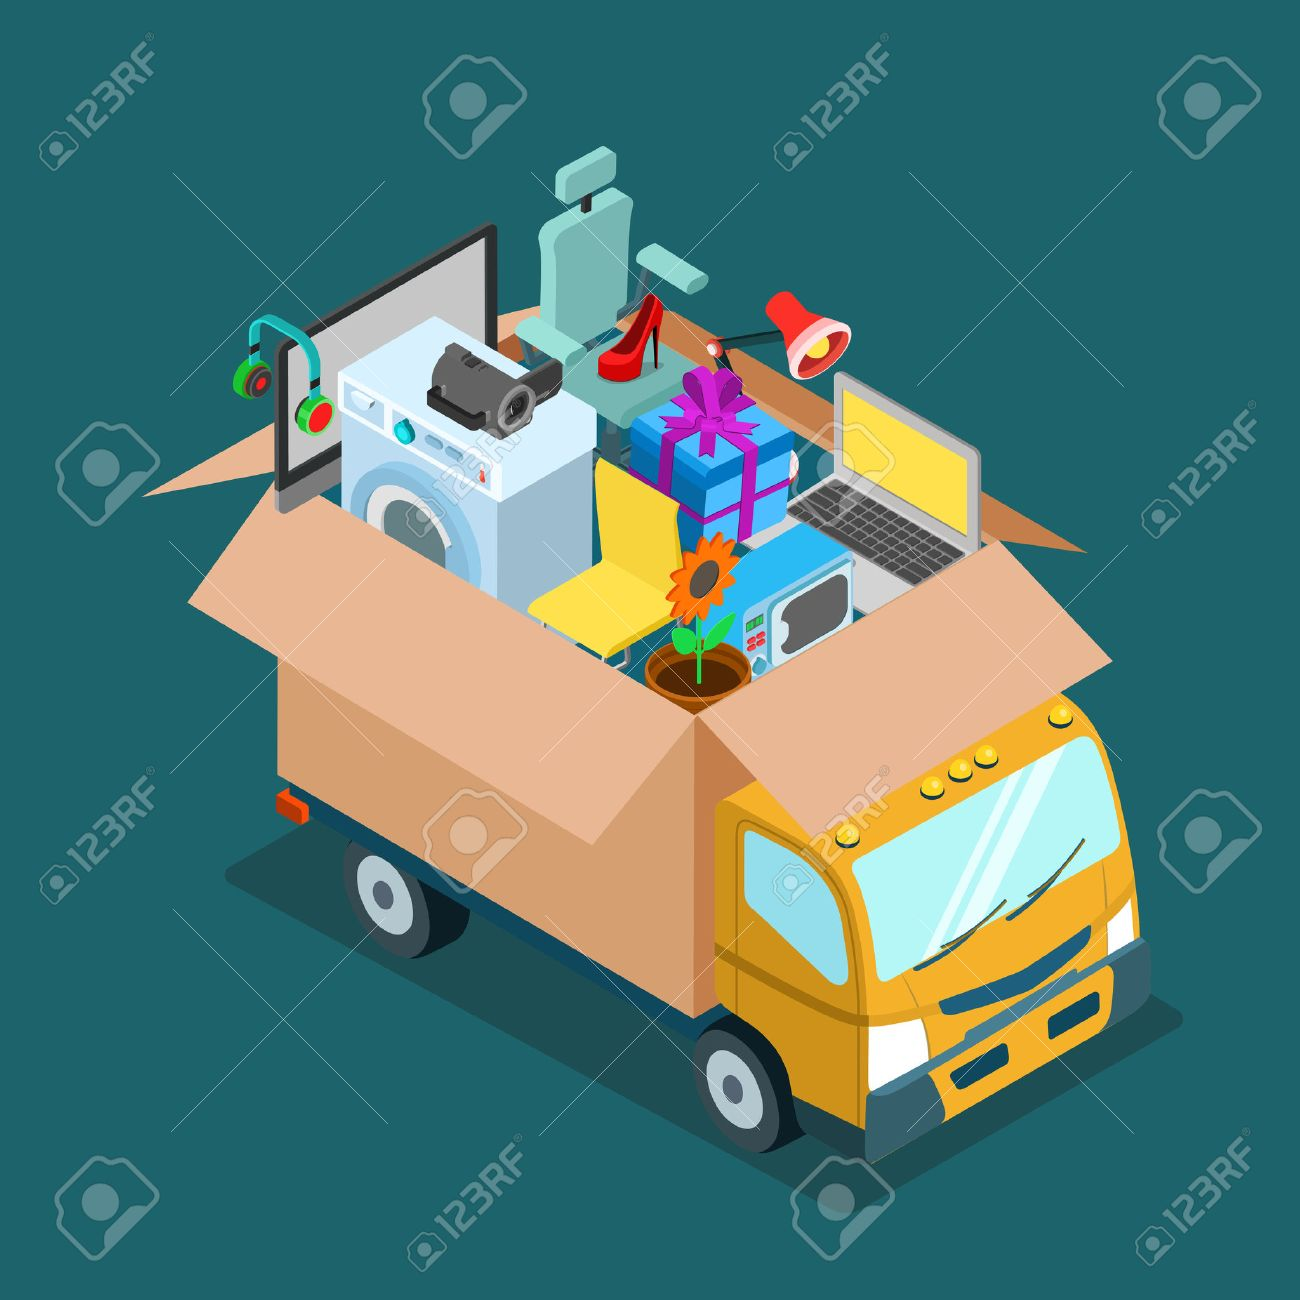 Flat 3d isometric online internet web shopping delivery or home office moving concept. Mover van car lorry with open deliver box full of electronics goods gift present. Website conceptual infogaphics. Stock Vector - 54620557